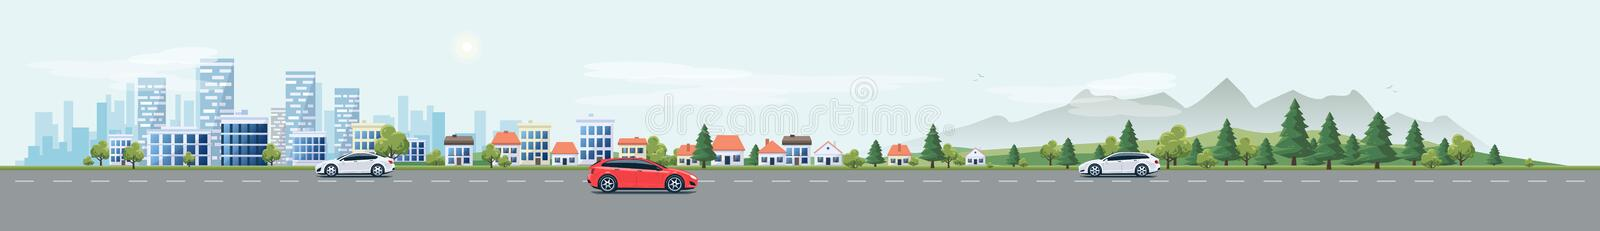 Urban Landscape Street Road with Cars and City Nature Background. Flat vector cartoon style illustration of urban landscape street with cars, skyline city office